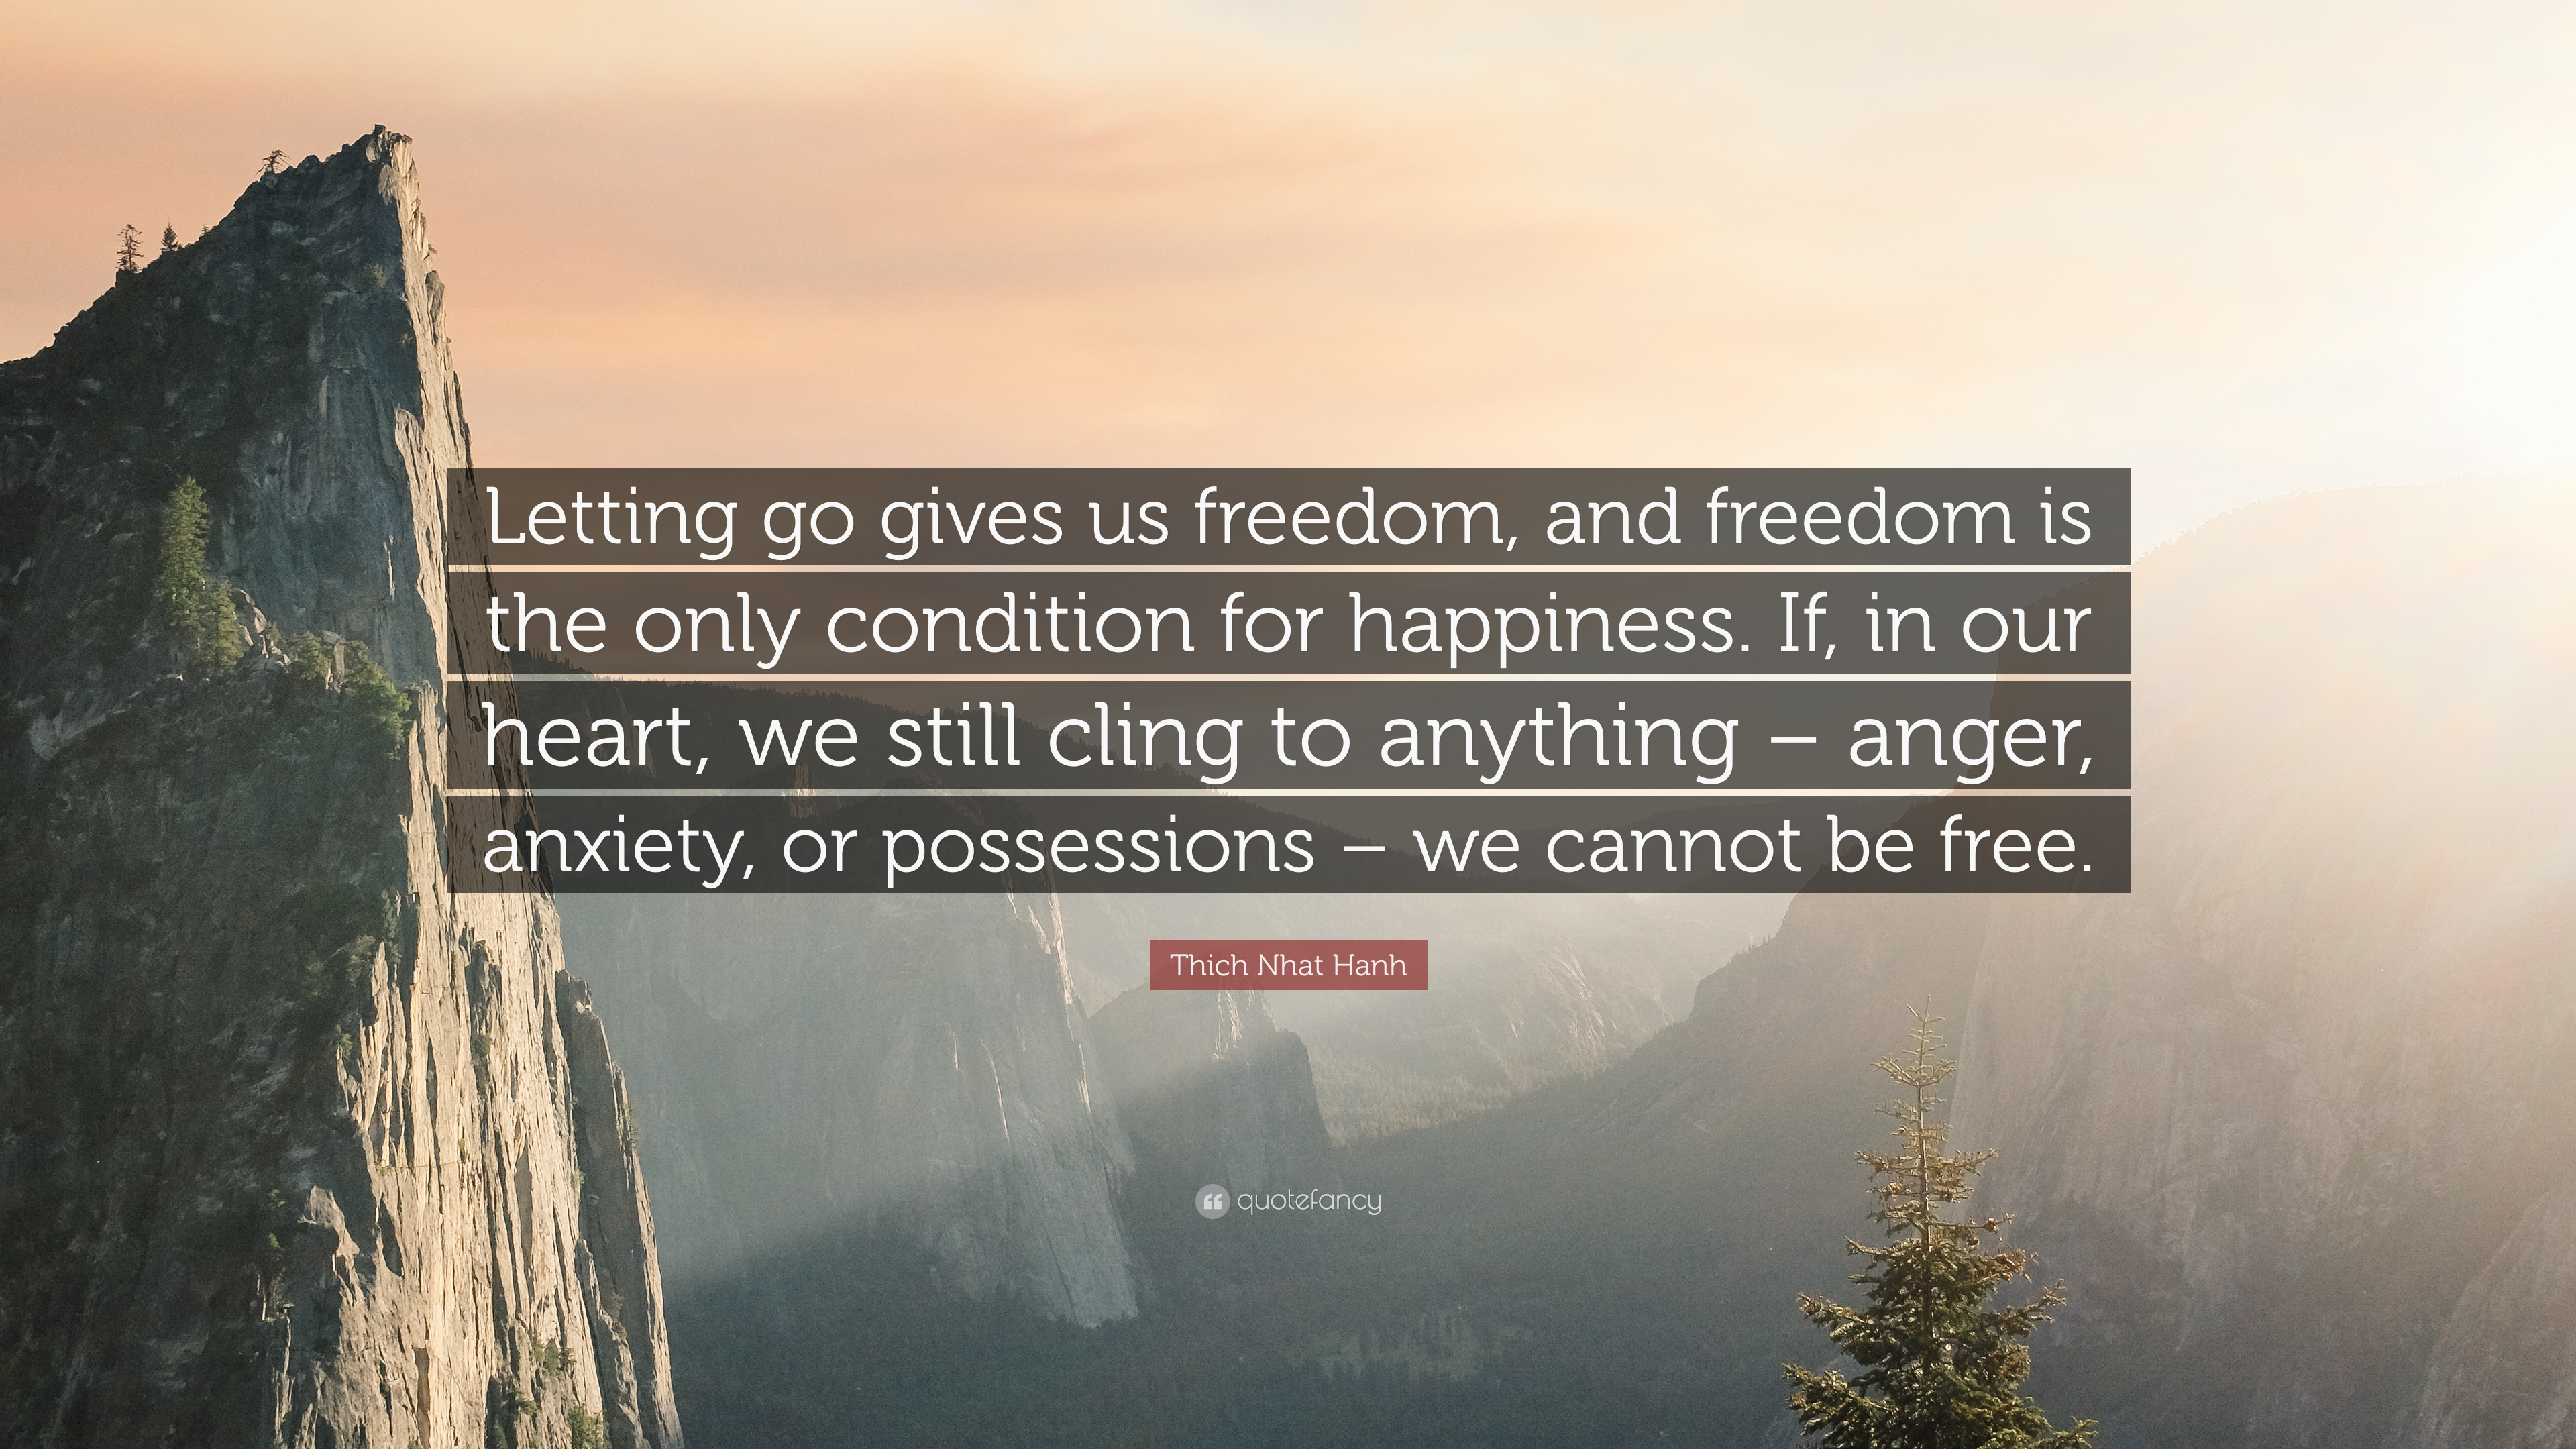 Thich Nhat Hanh Quote Letting Go Gives Us Freedom And Freedom Is